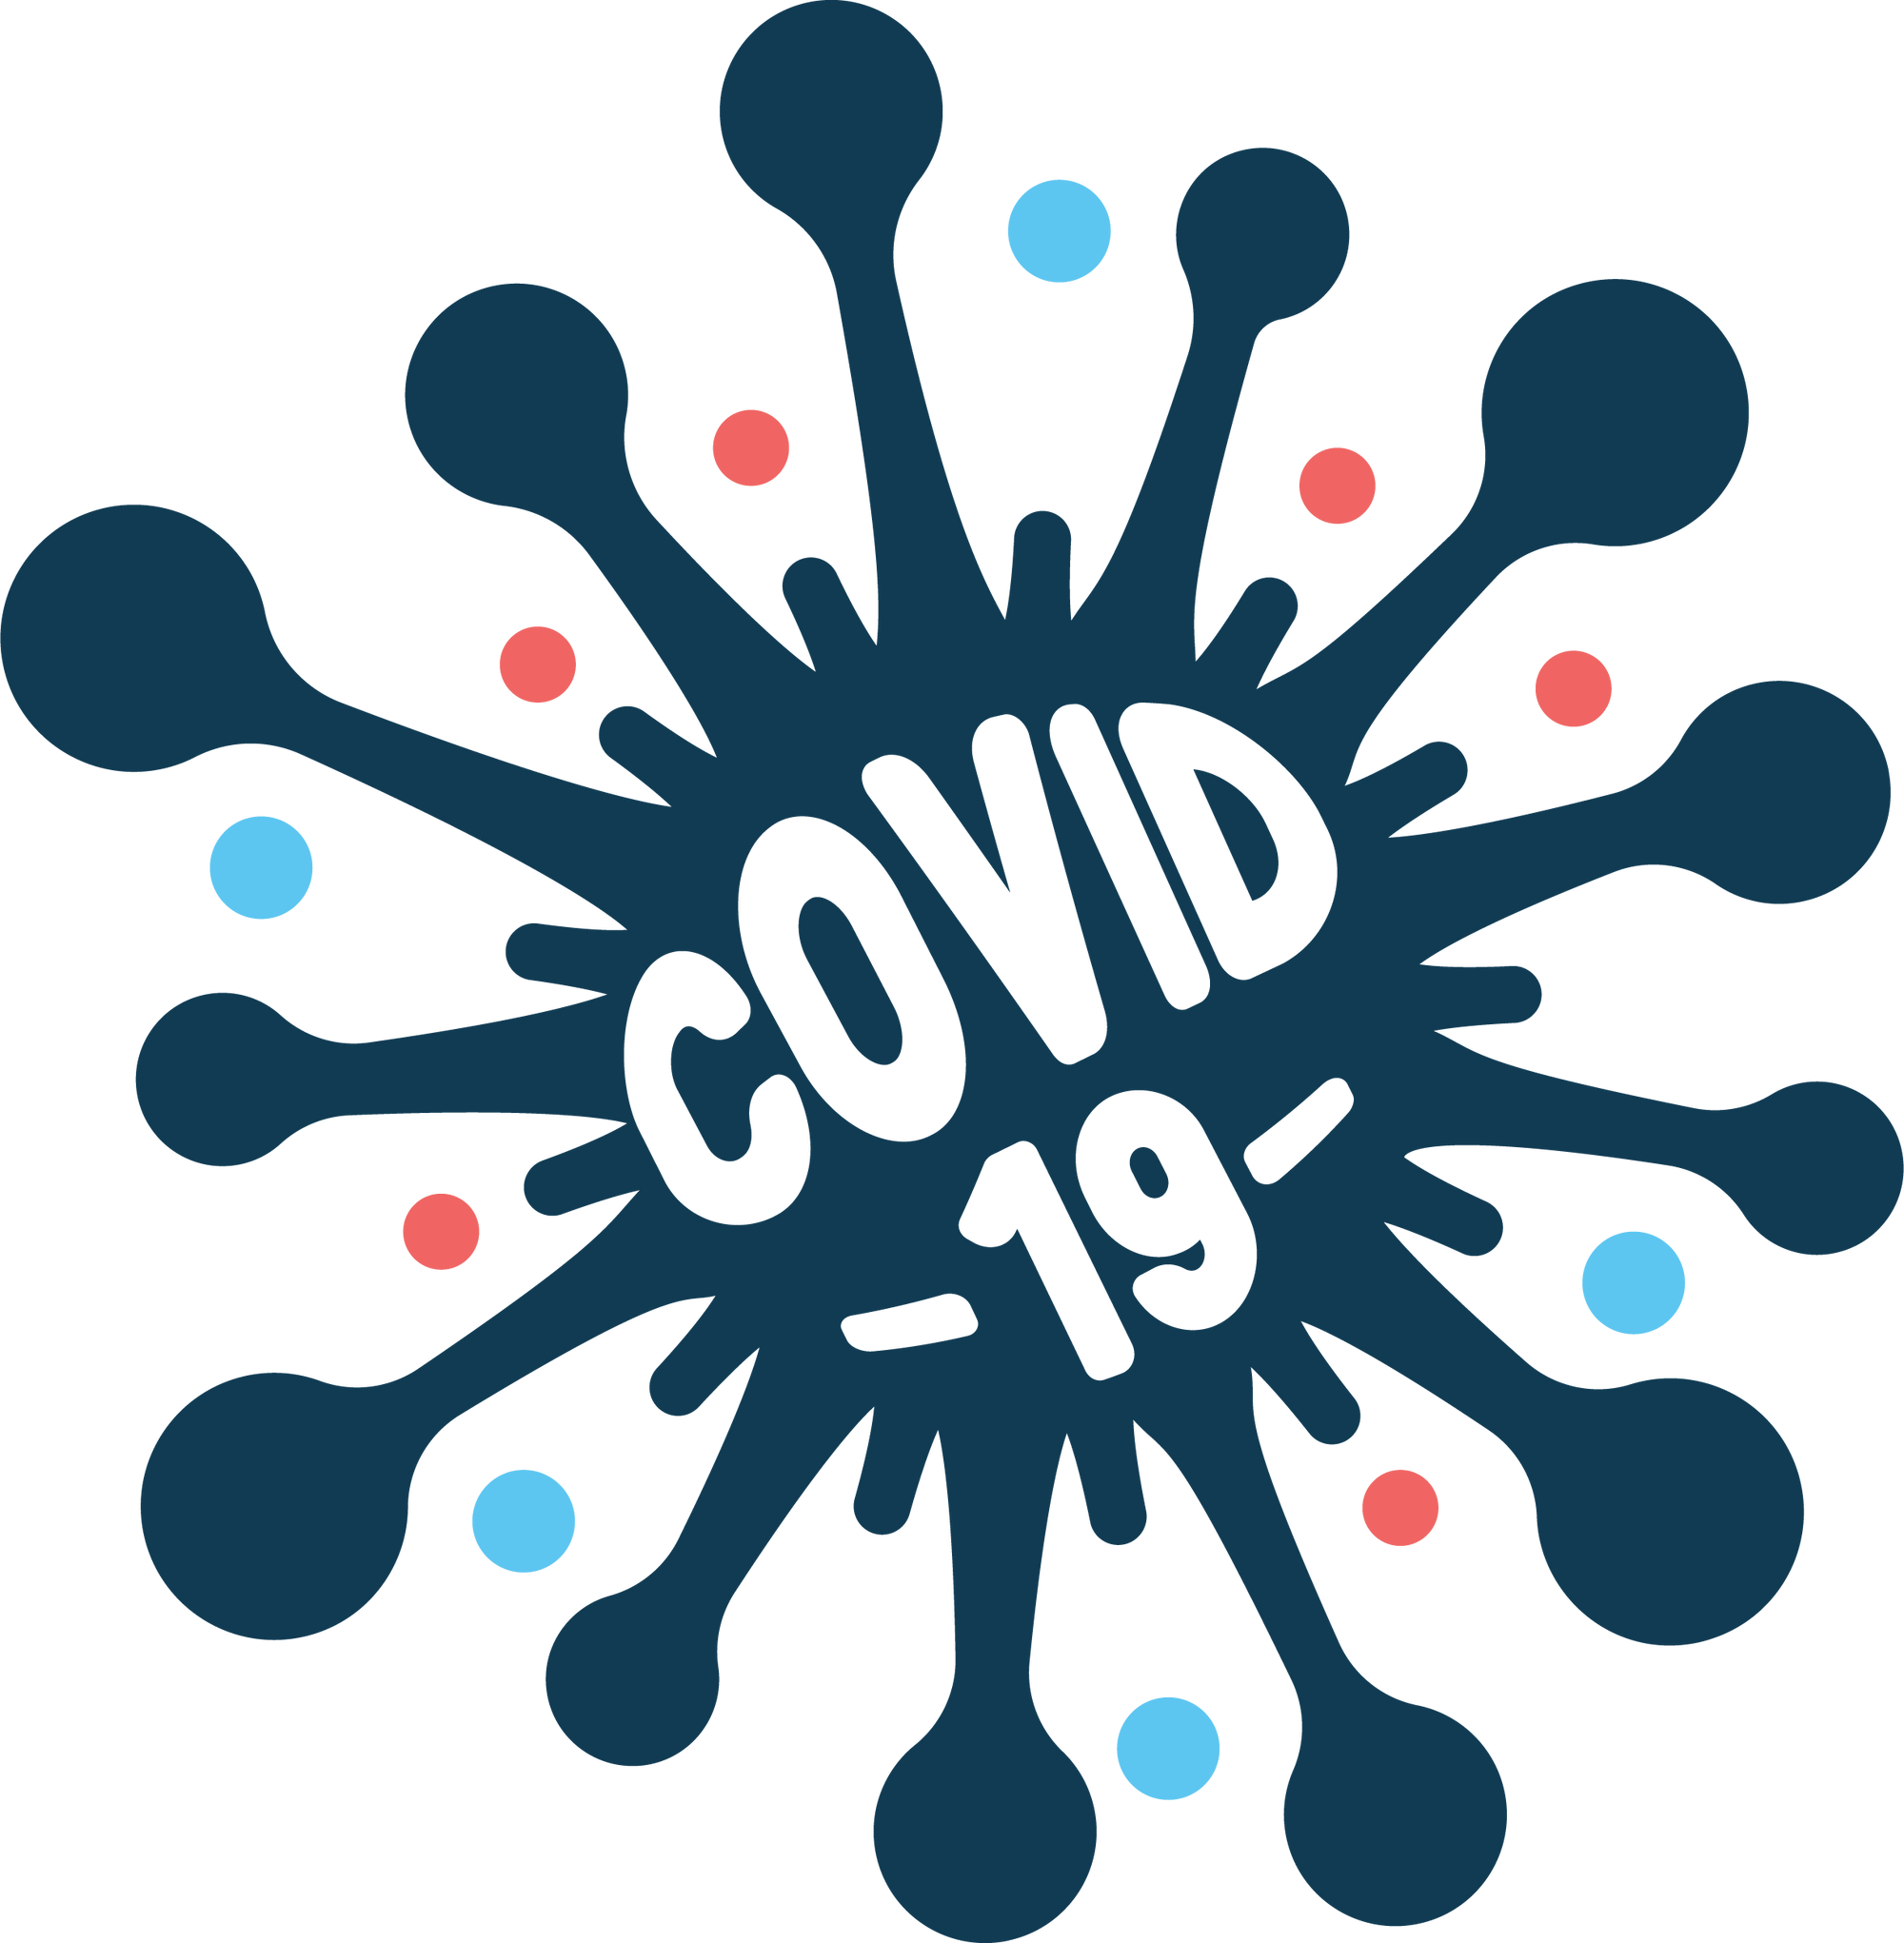 COVID-19 SVG Cut File